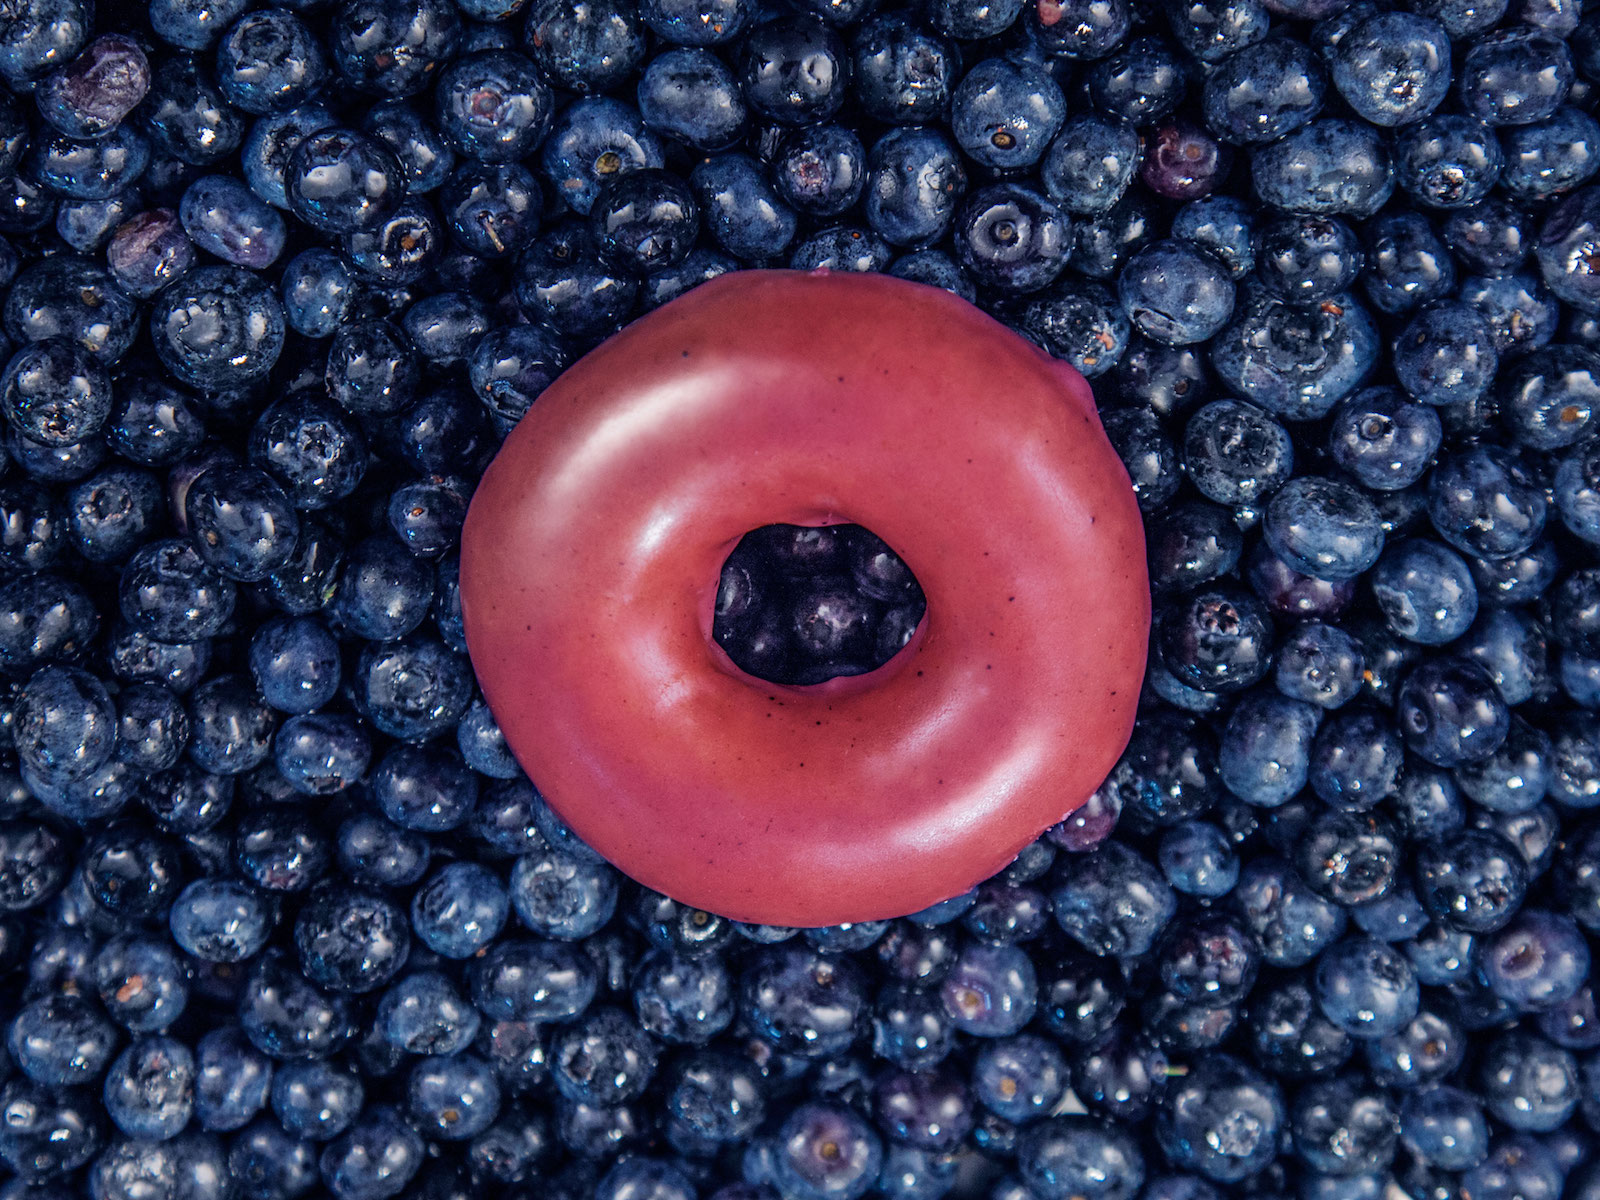 Blueberry Krispy Kreme